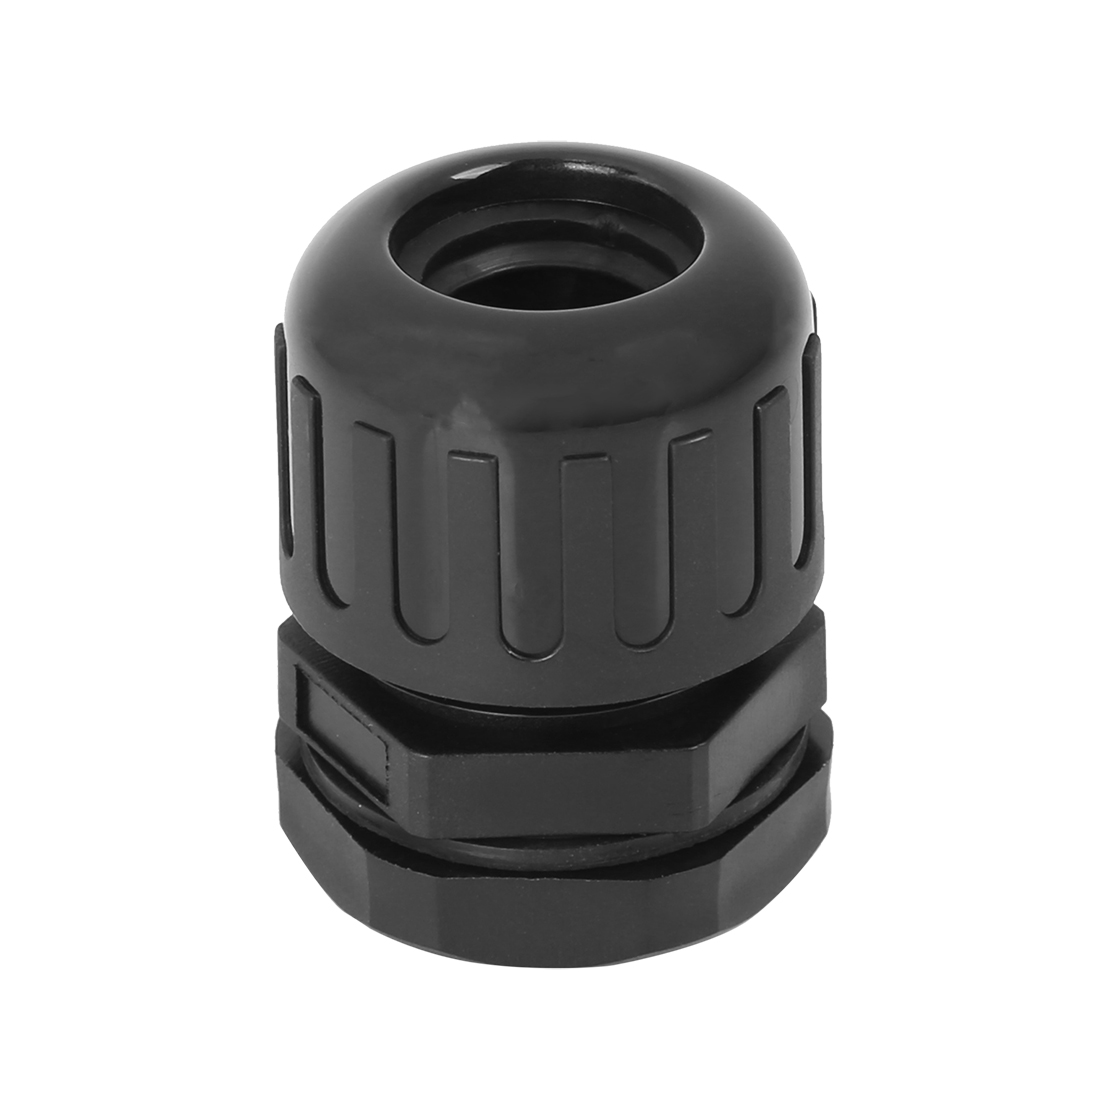 Cable Gland Waterproof Wire Gland Adjustable Corrugated Tube Connectors Black